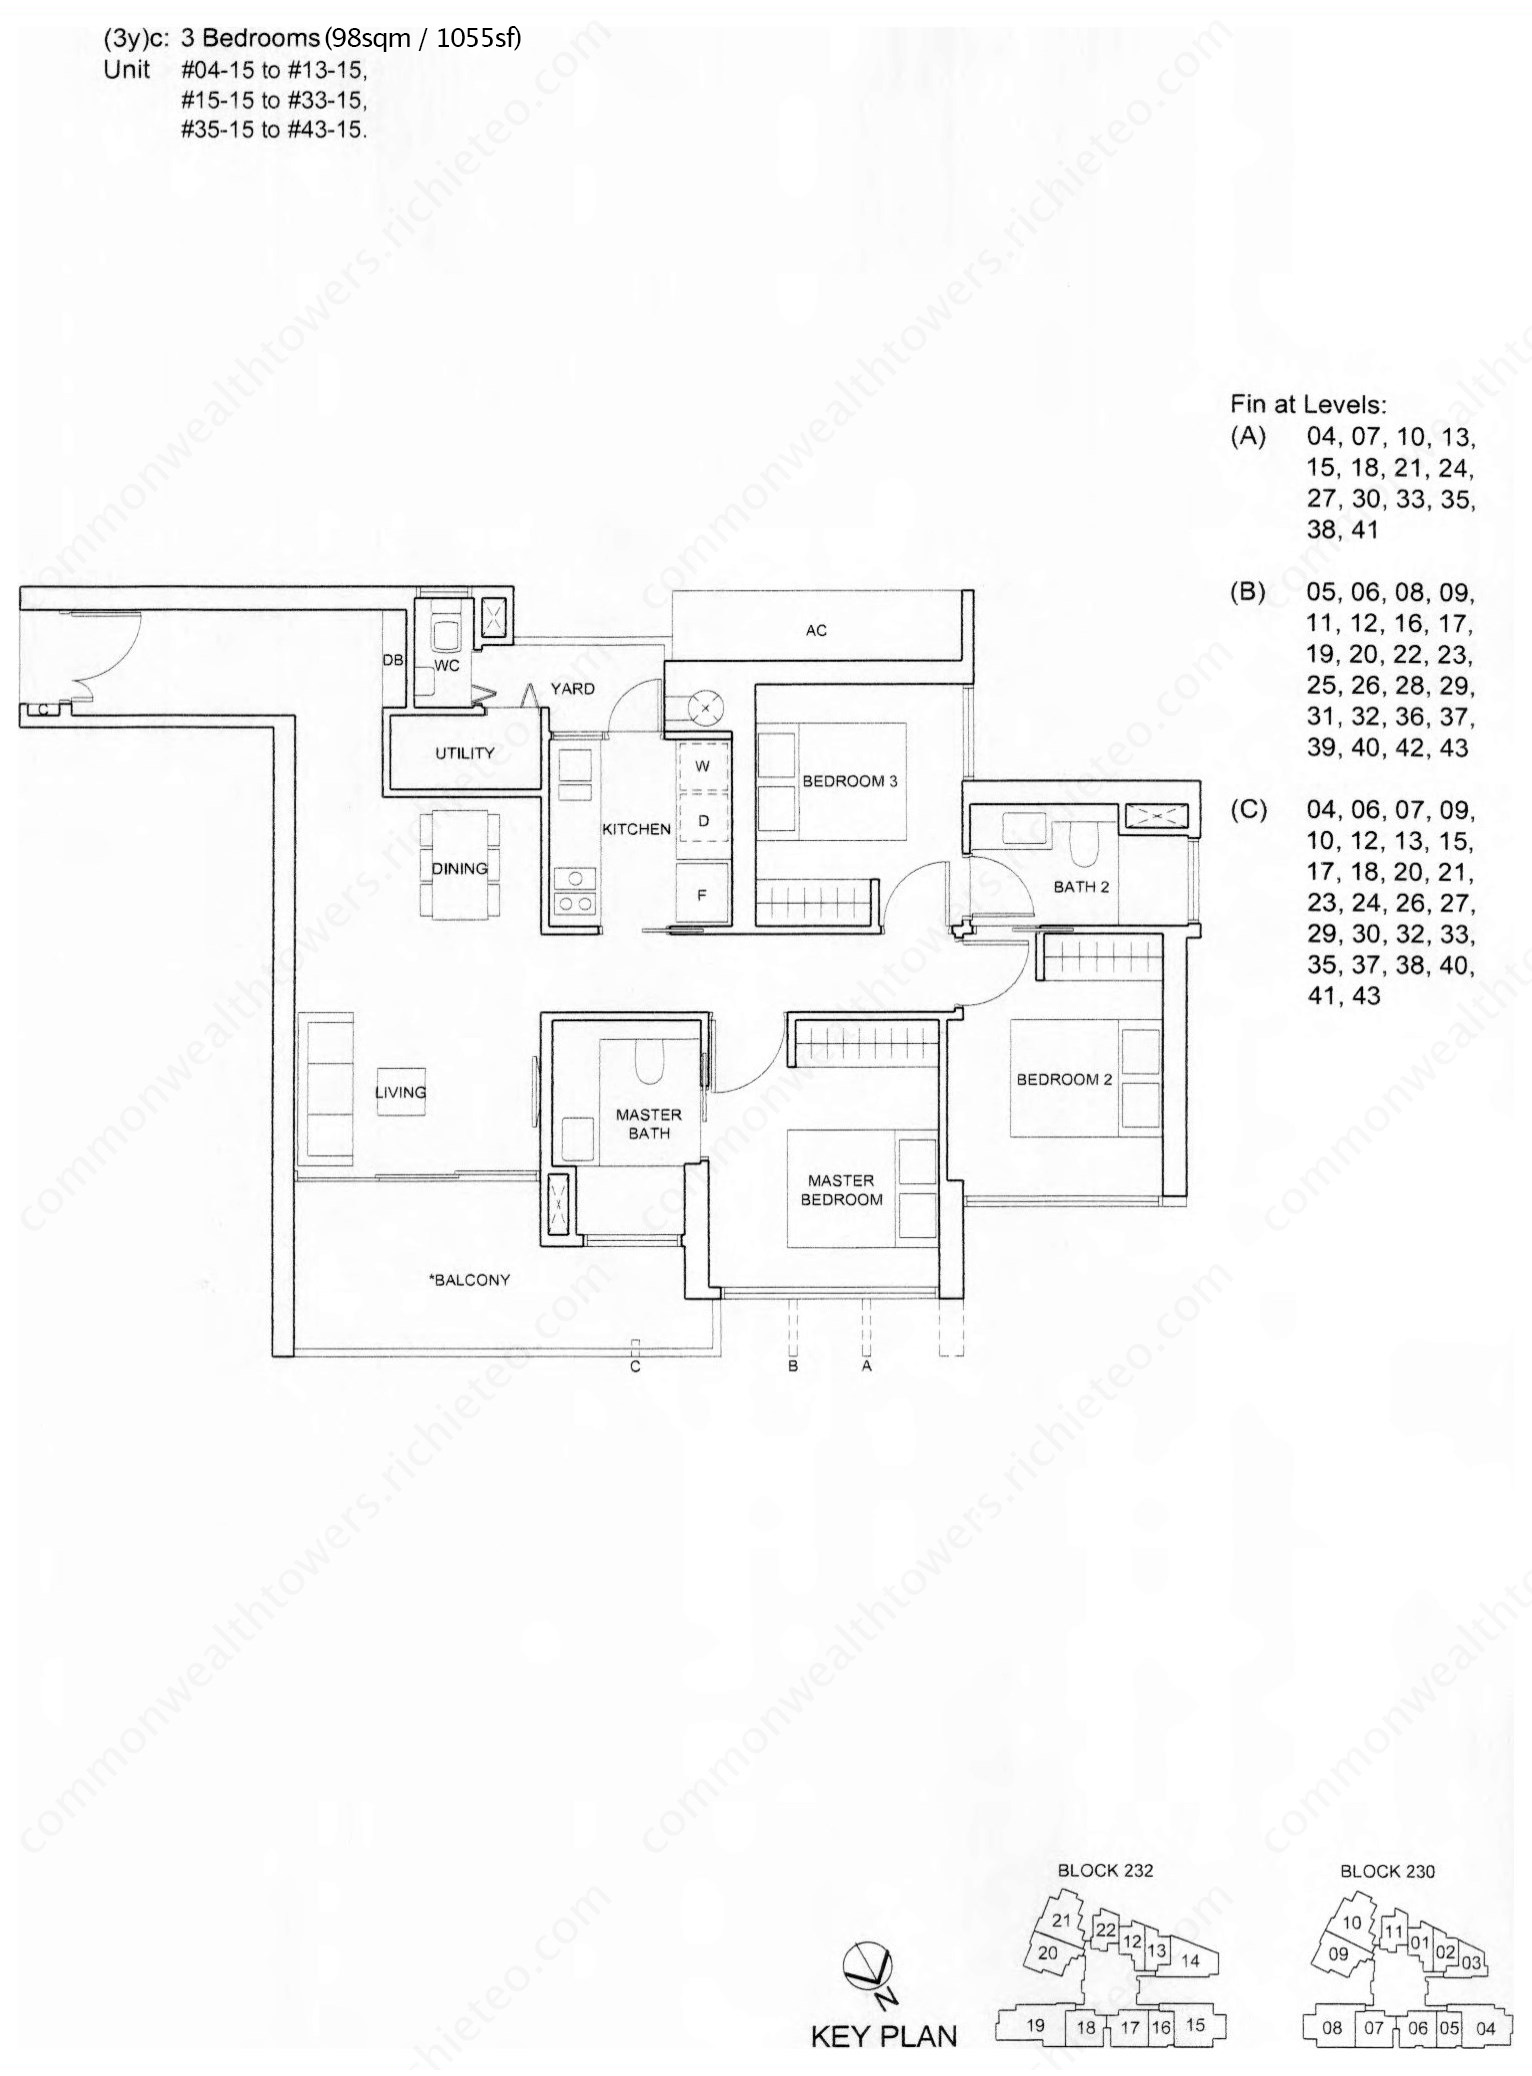 3 Bedroom Floor Plan Singapore Commonwealth Towers Condo